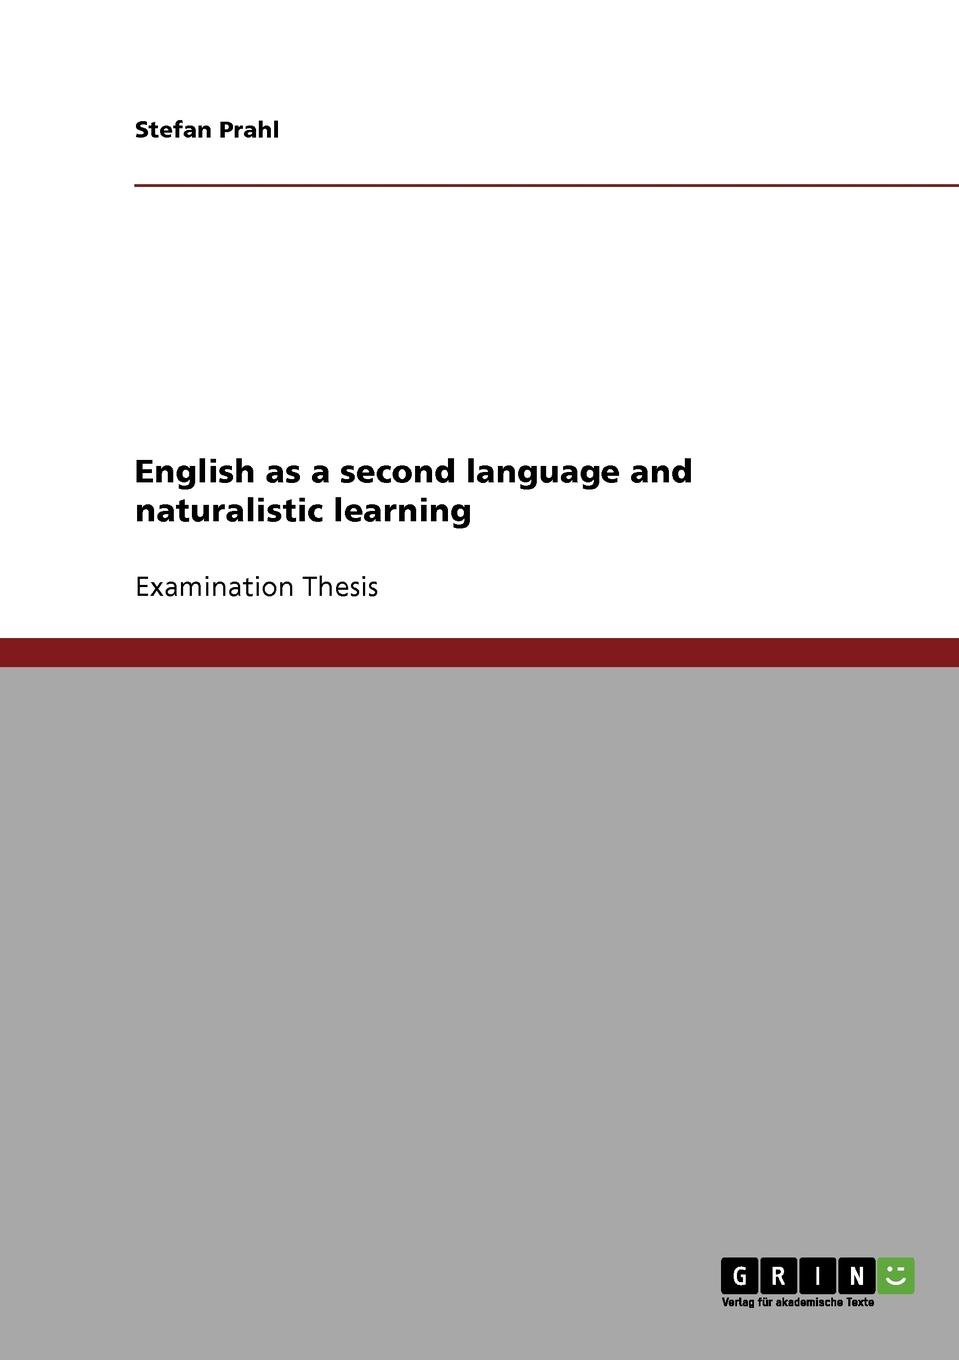 Stefan Prahl English as a second language and naturalistic learning kerstin köck language acquisition nativism vs contructivism